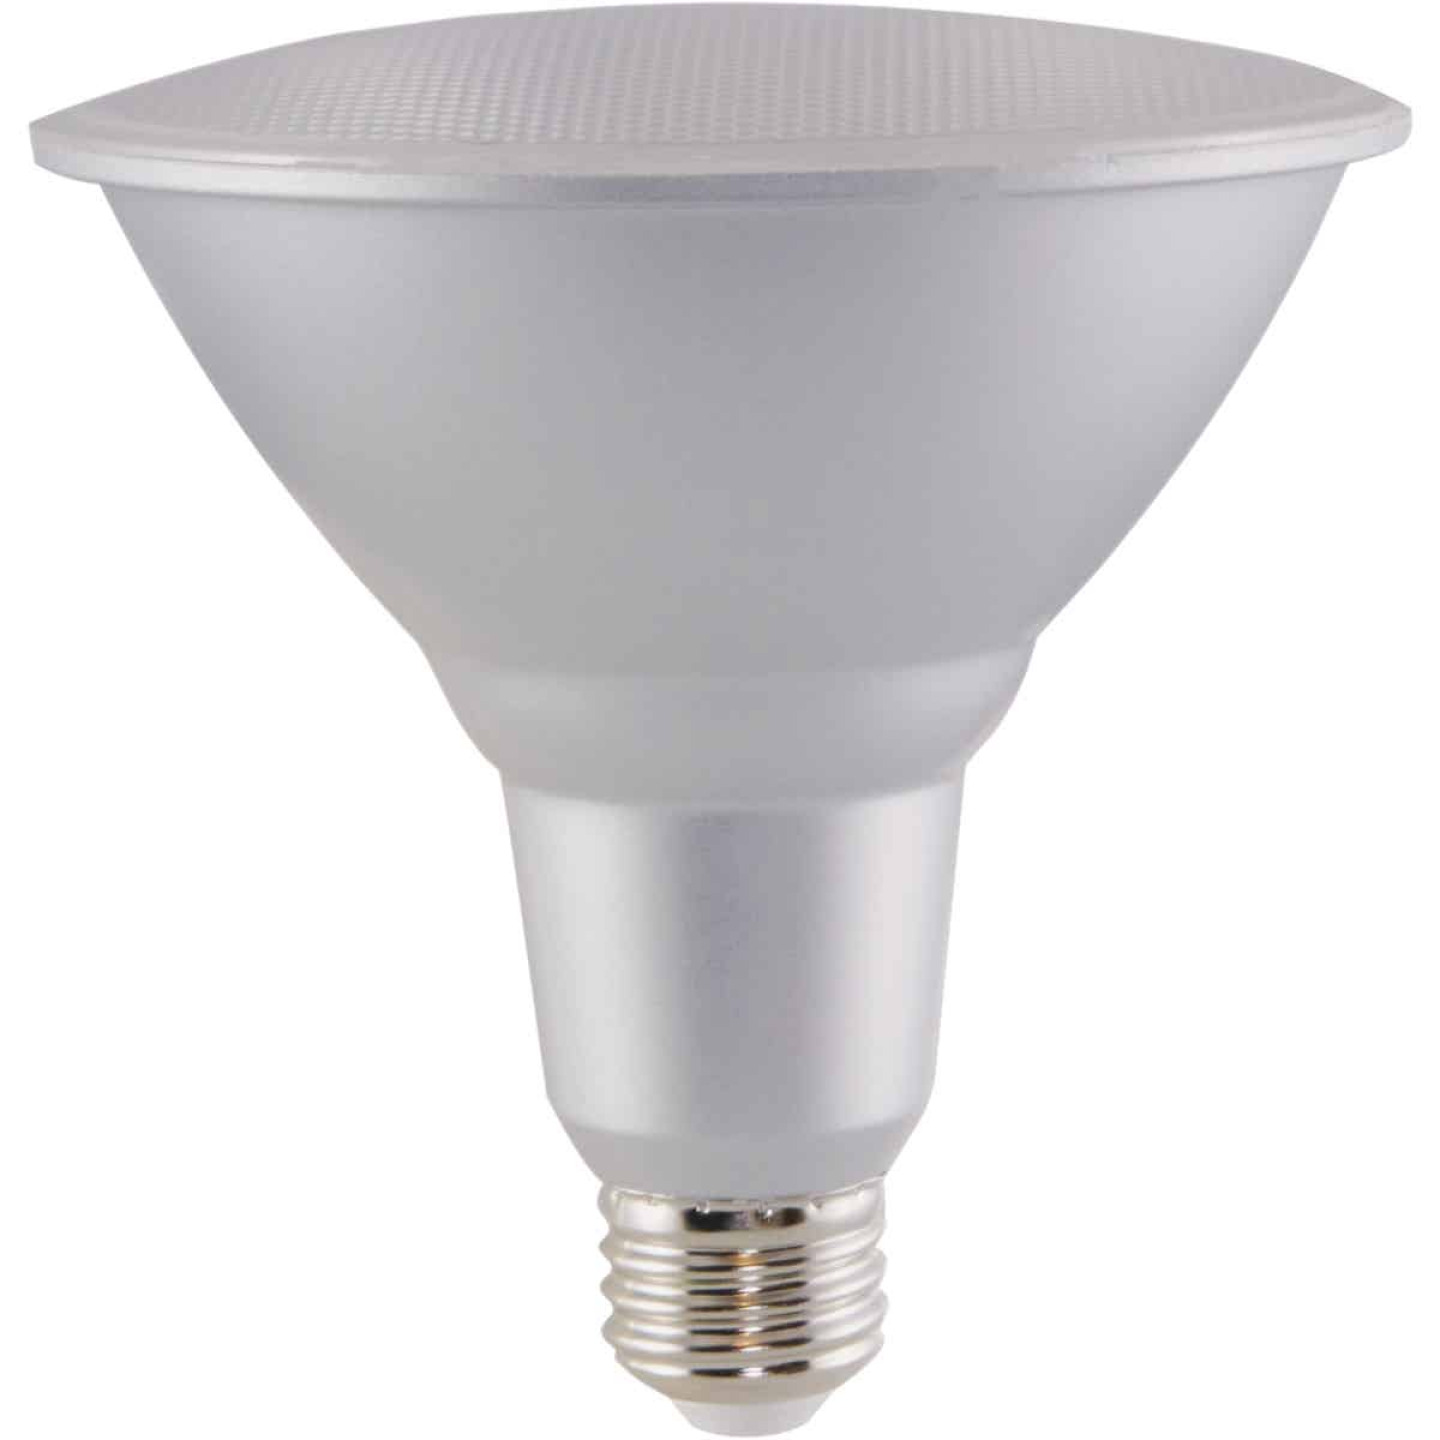 Satco Nuvo 90W Equivalent Warm White PAR38 Medium Dimmable LED Floodlight Light Bulb Image 3